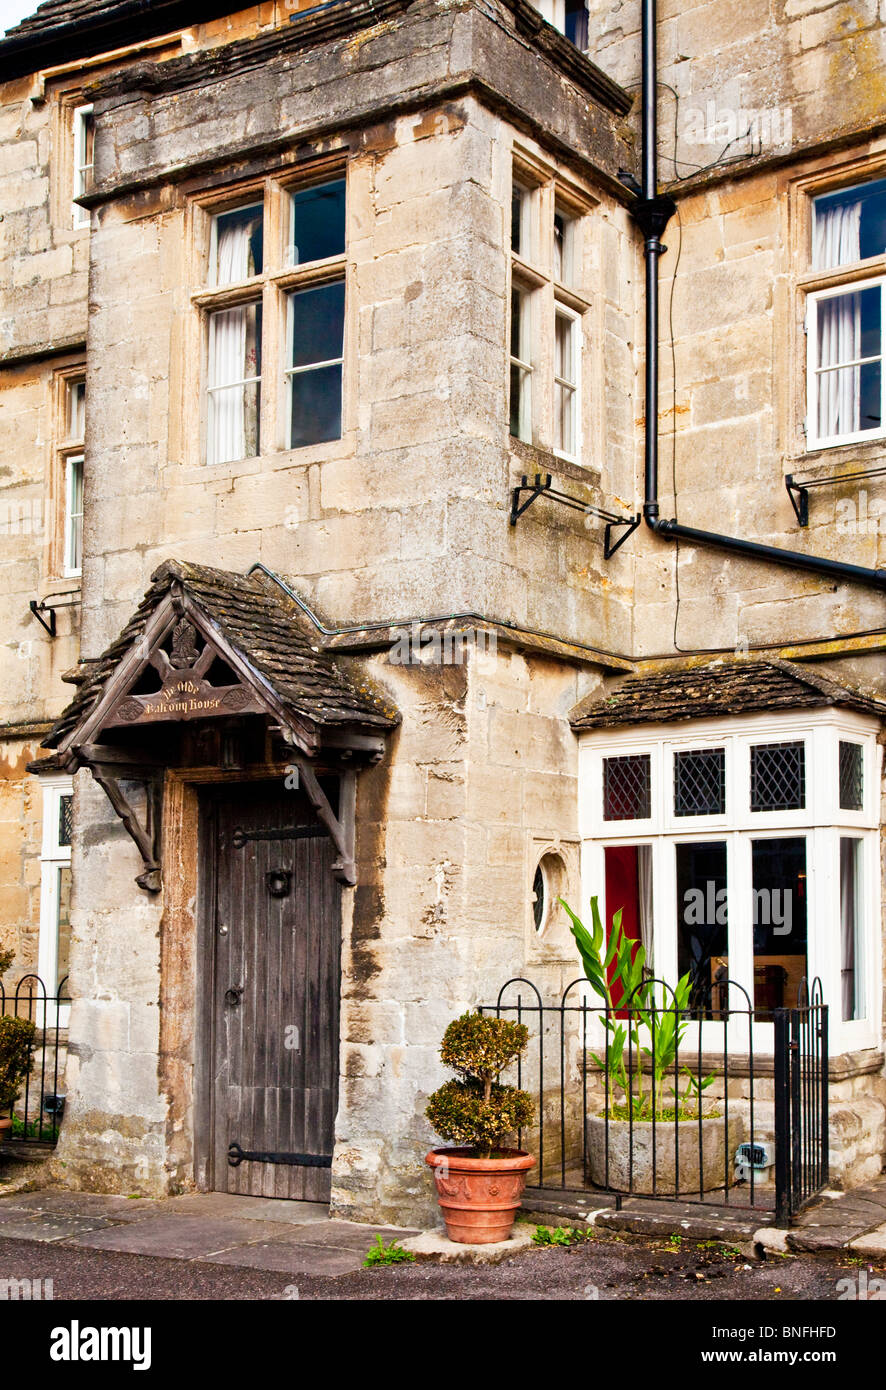 The Balcony House, one of the oldest buildings in the Cotswold village of Sherston, Wiltshire - Stock Image